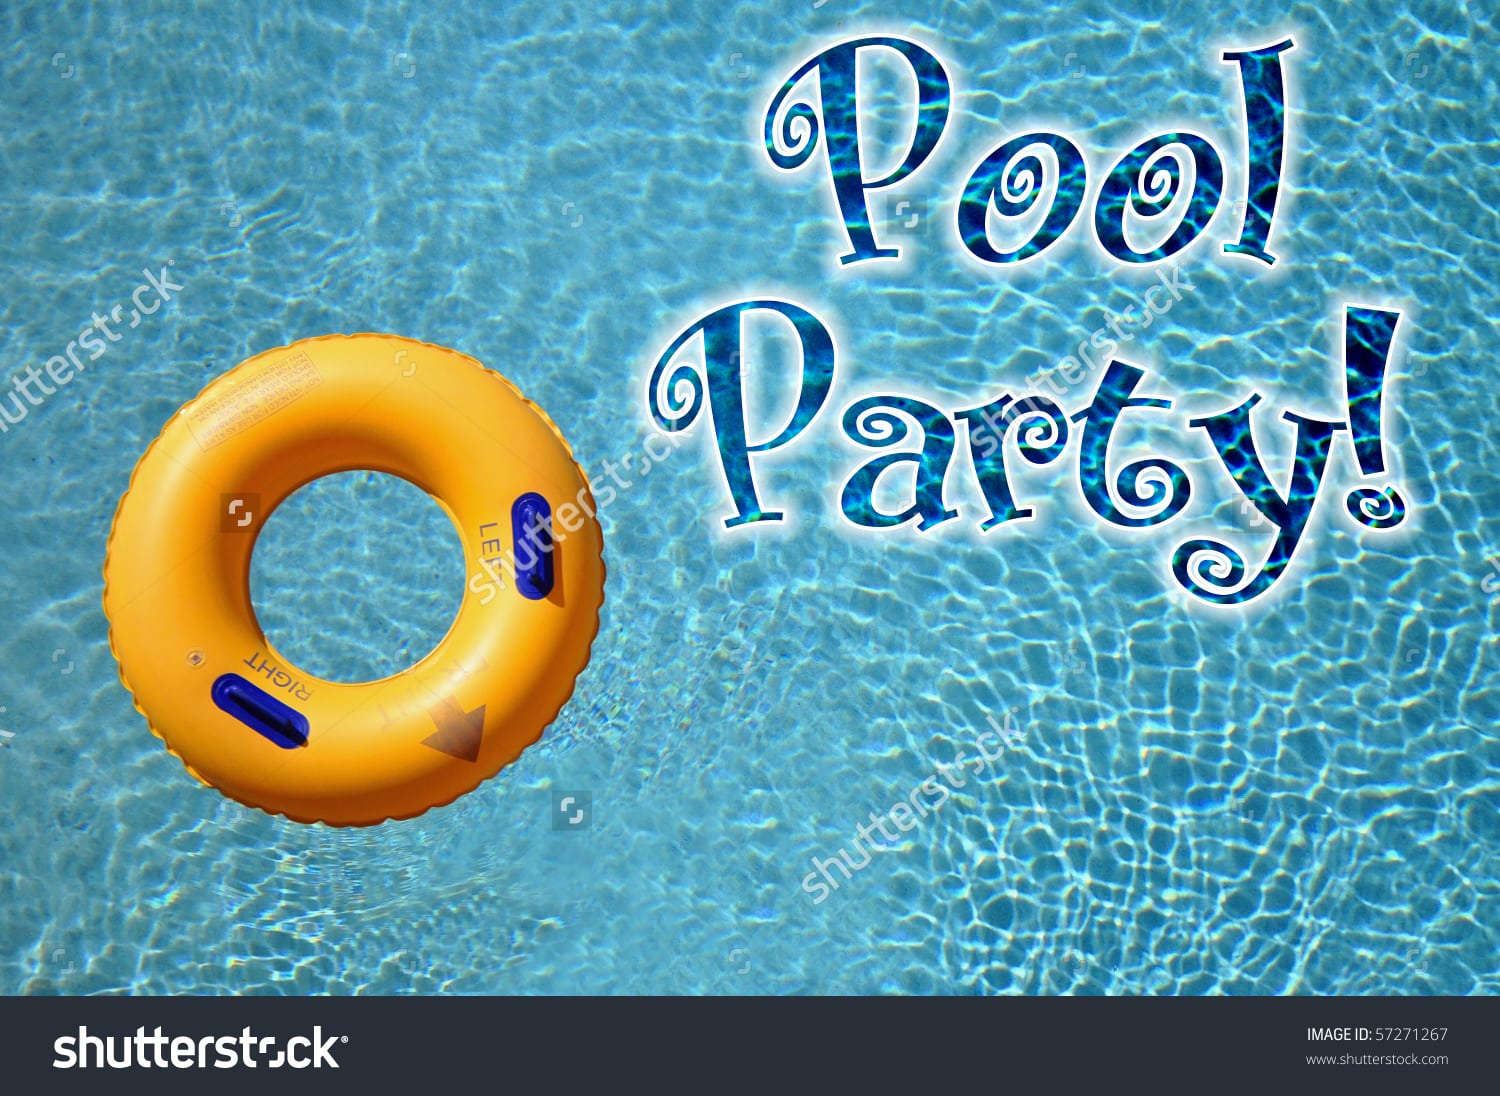 Pool Party Invitation Concept Stock Photo 57271267